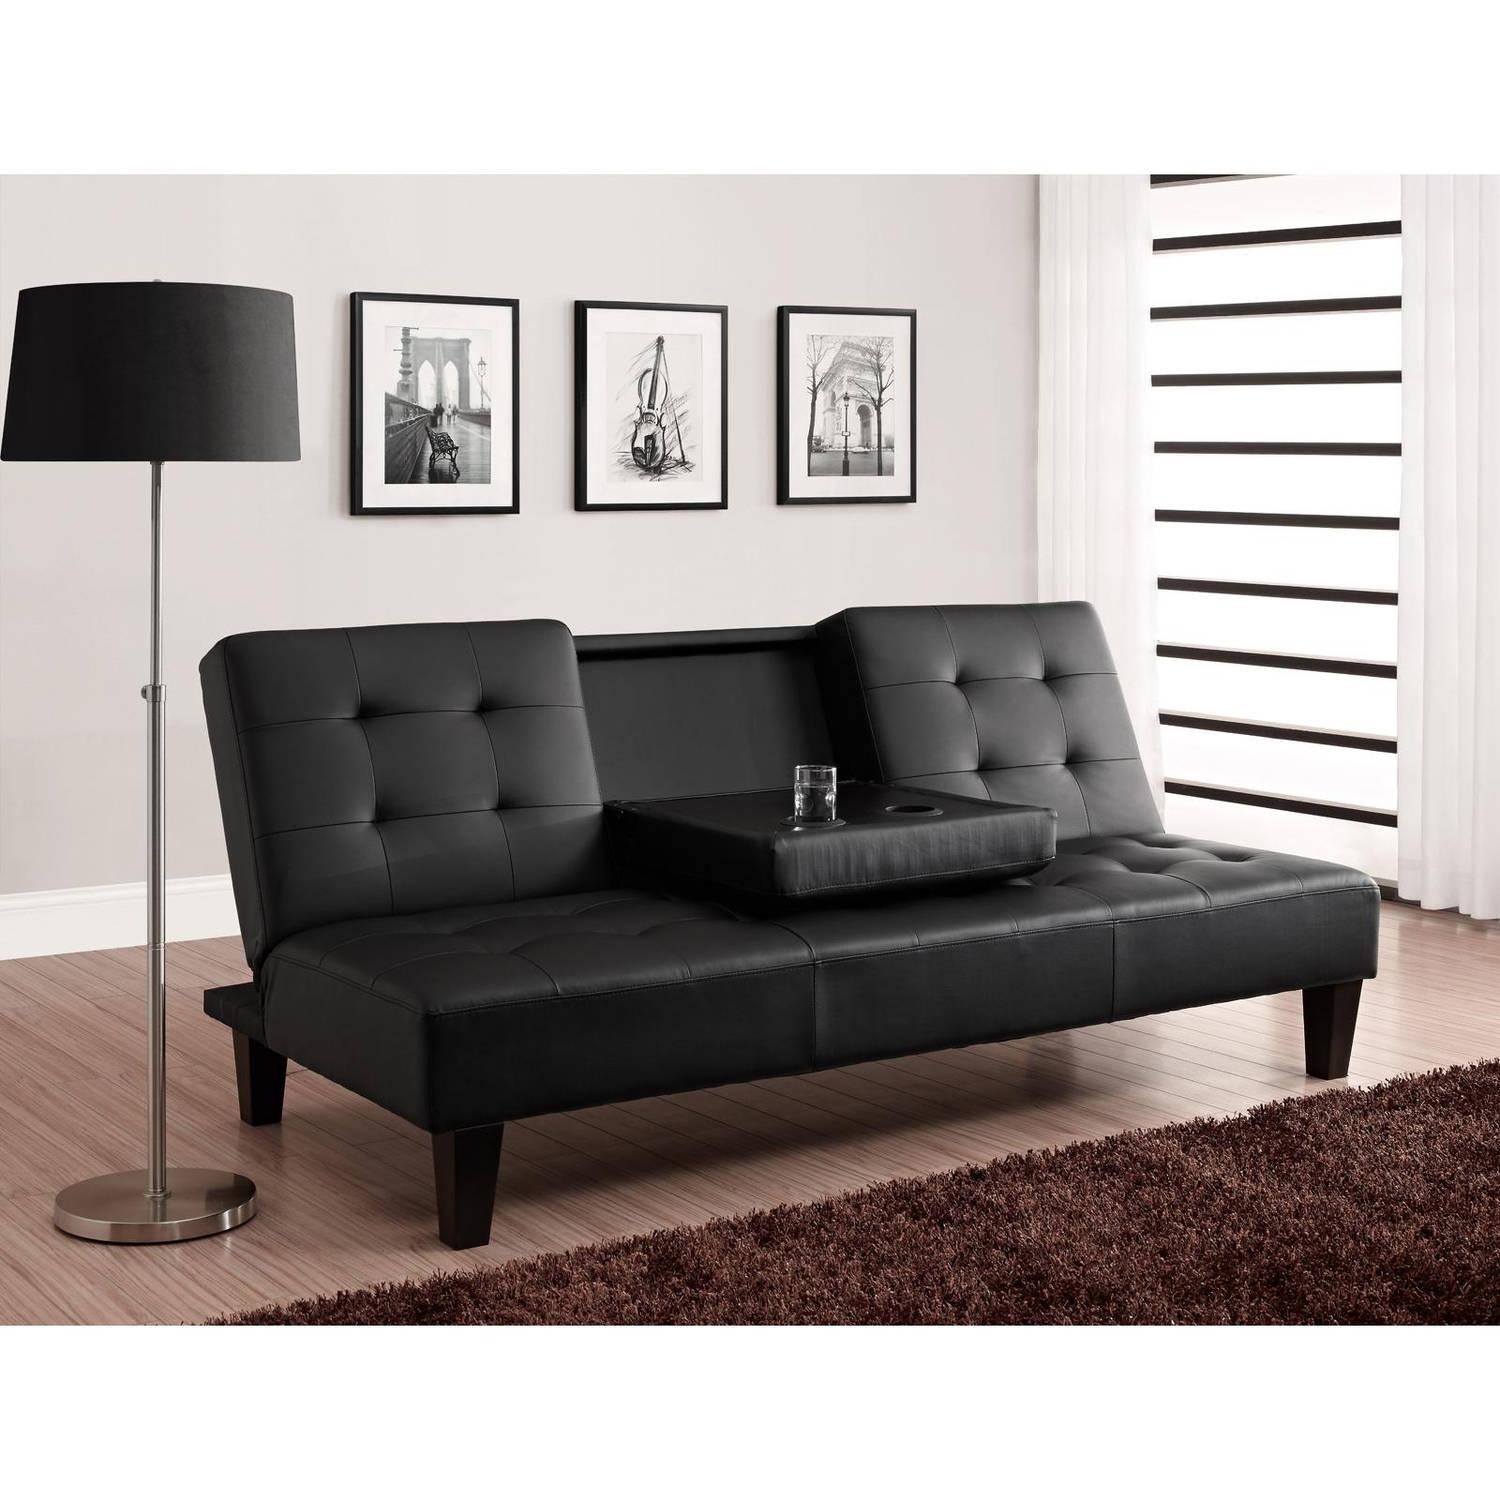 Julia Cupholder Convertible Futon, Multiple Colors - Walmart for Futon Couch Beds